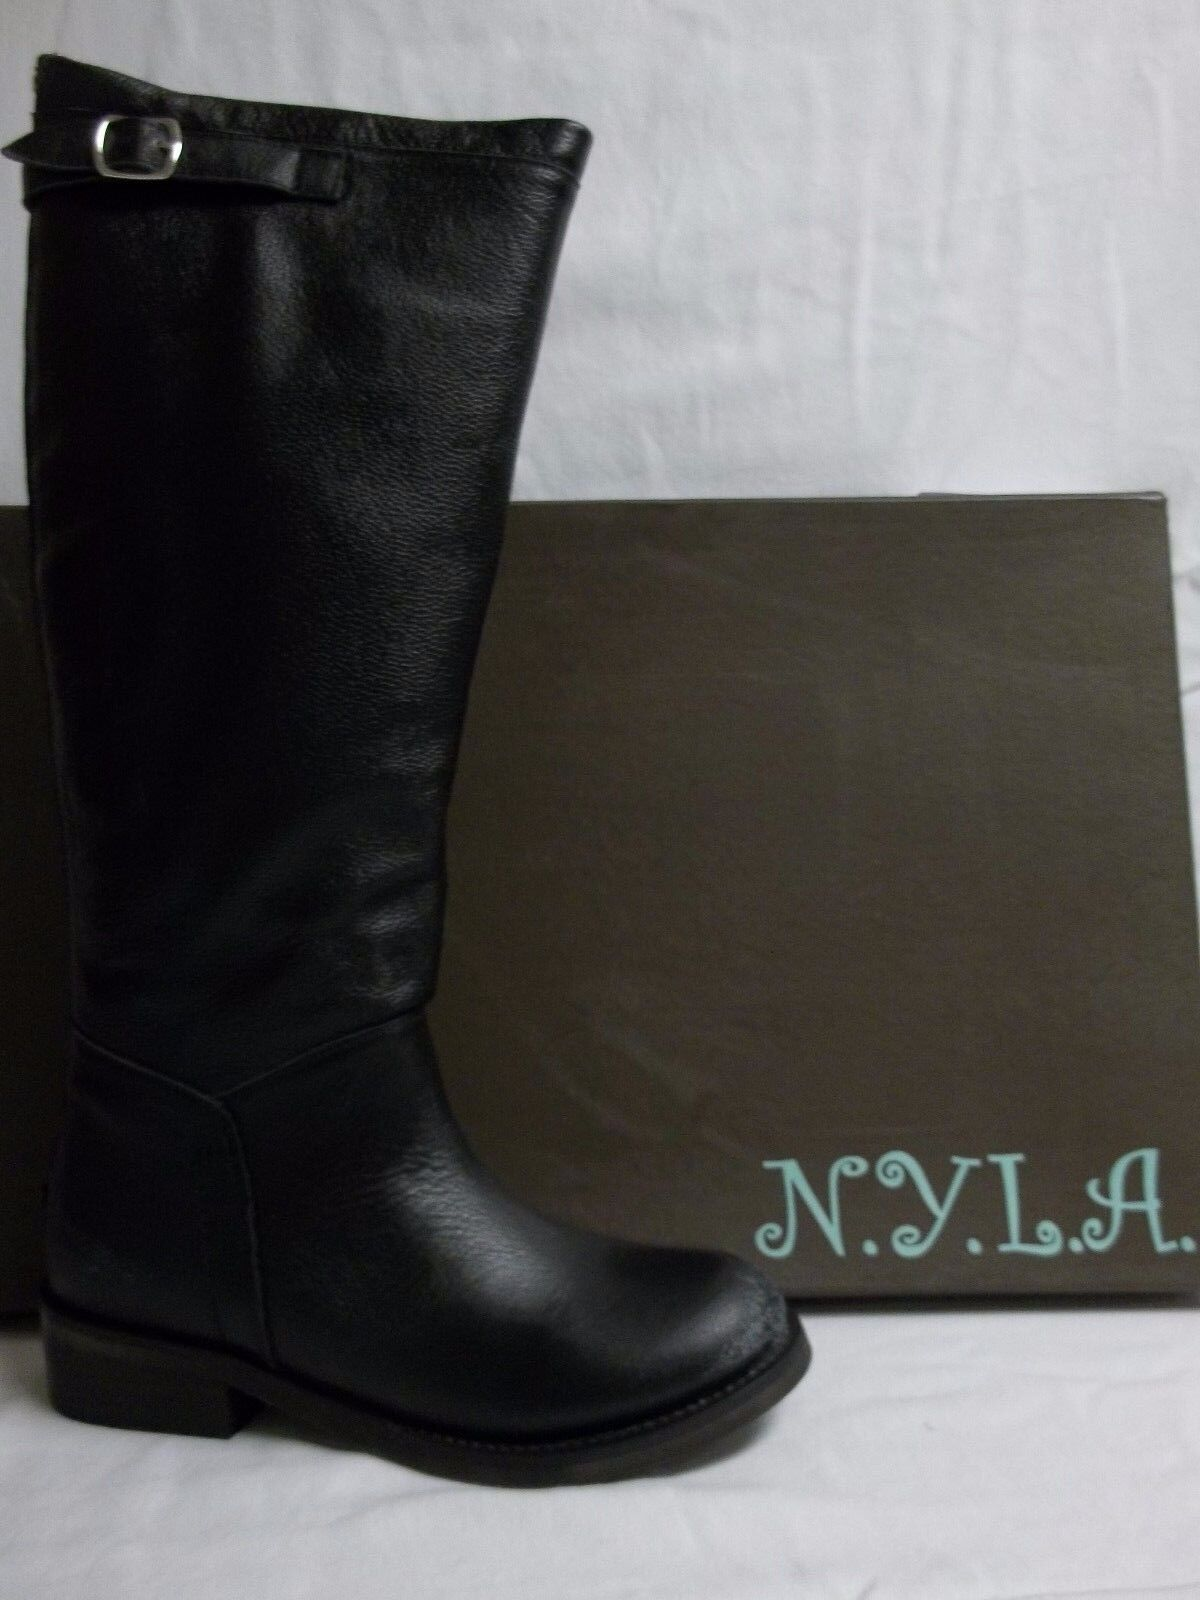 N.Y.L.A. Size 6.5 M Bravery Black Leather Knee High Boots New Womens Shoes